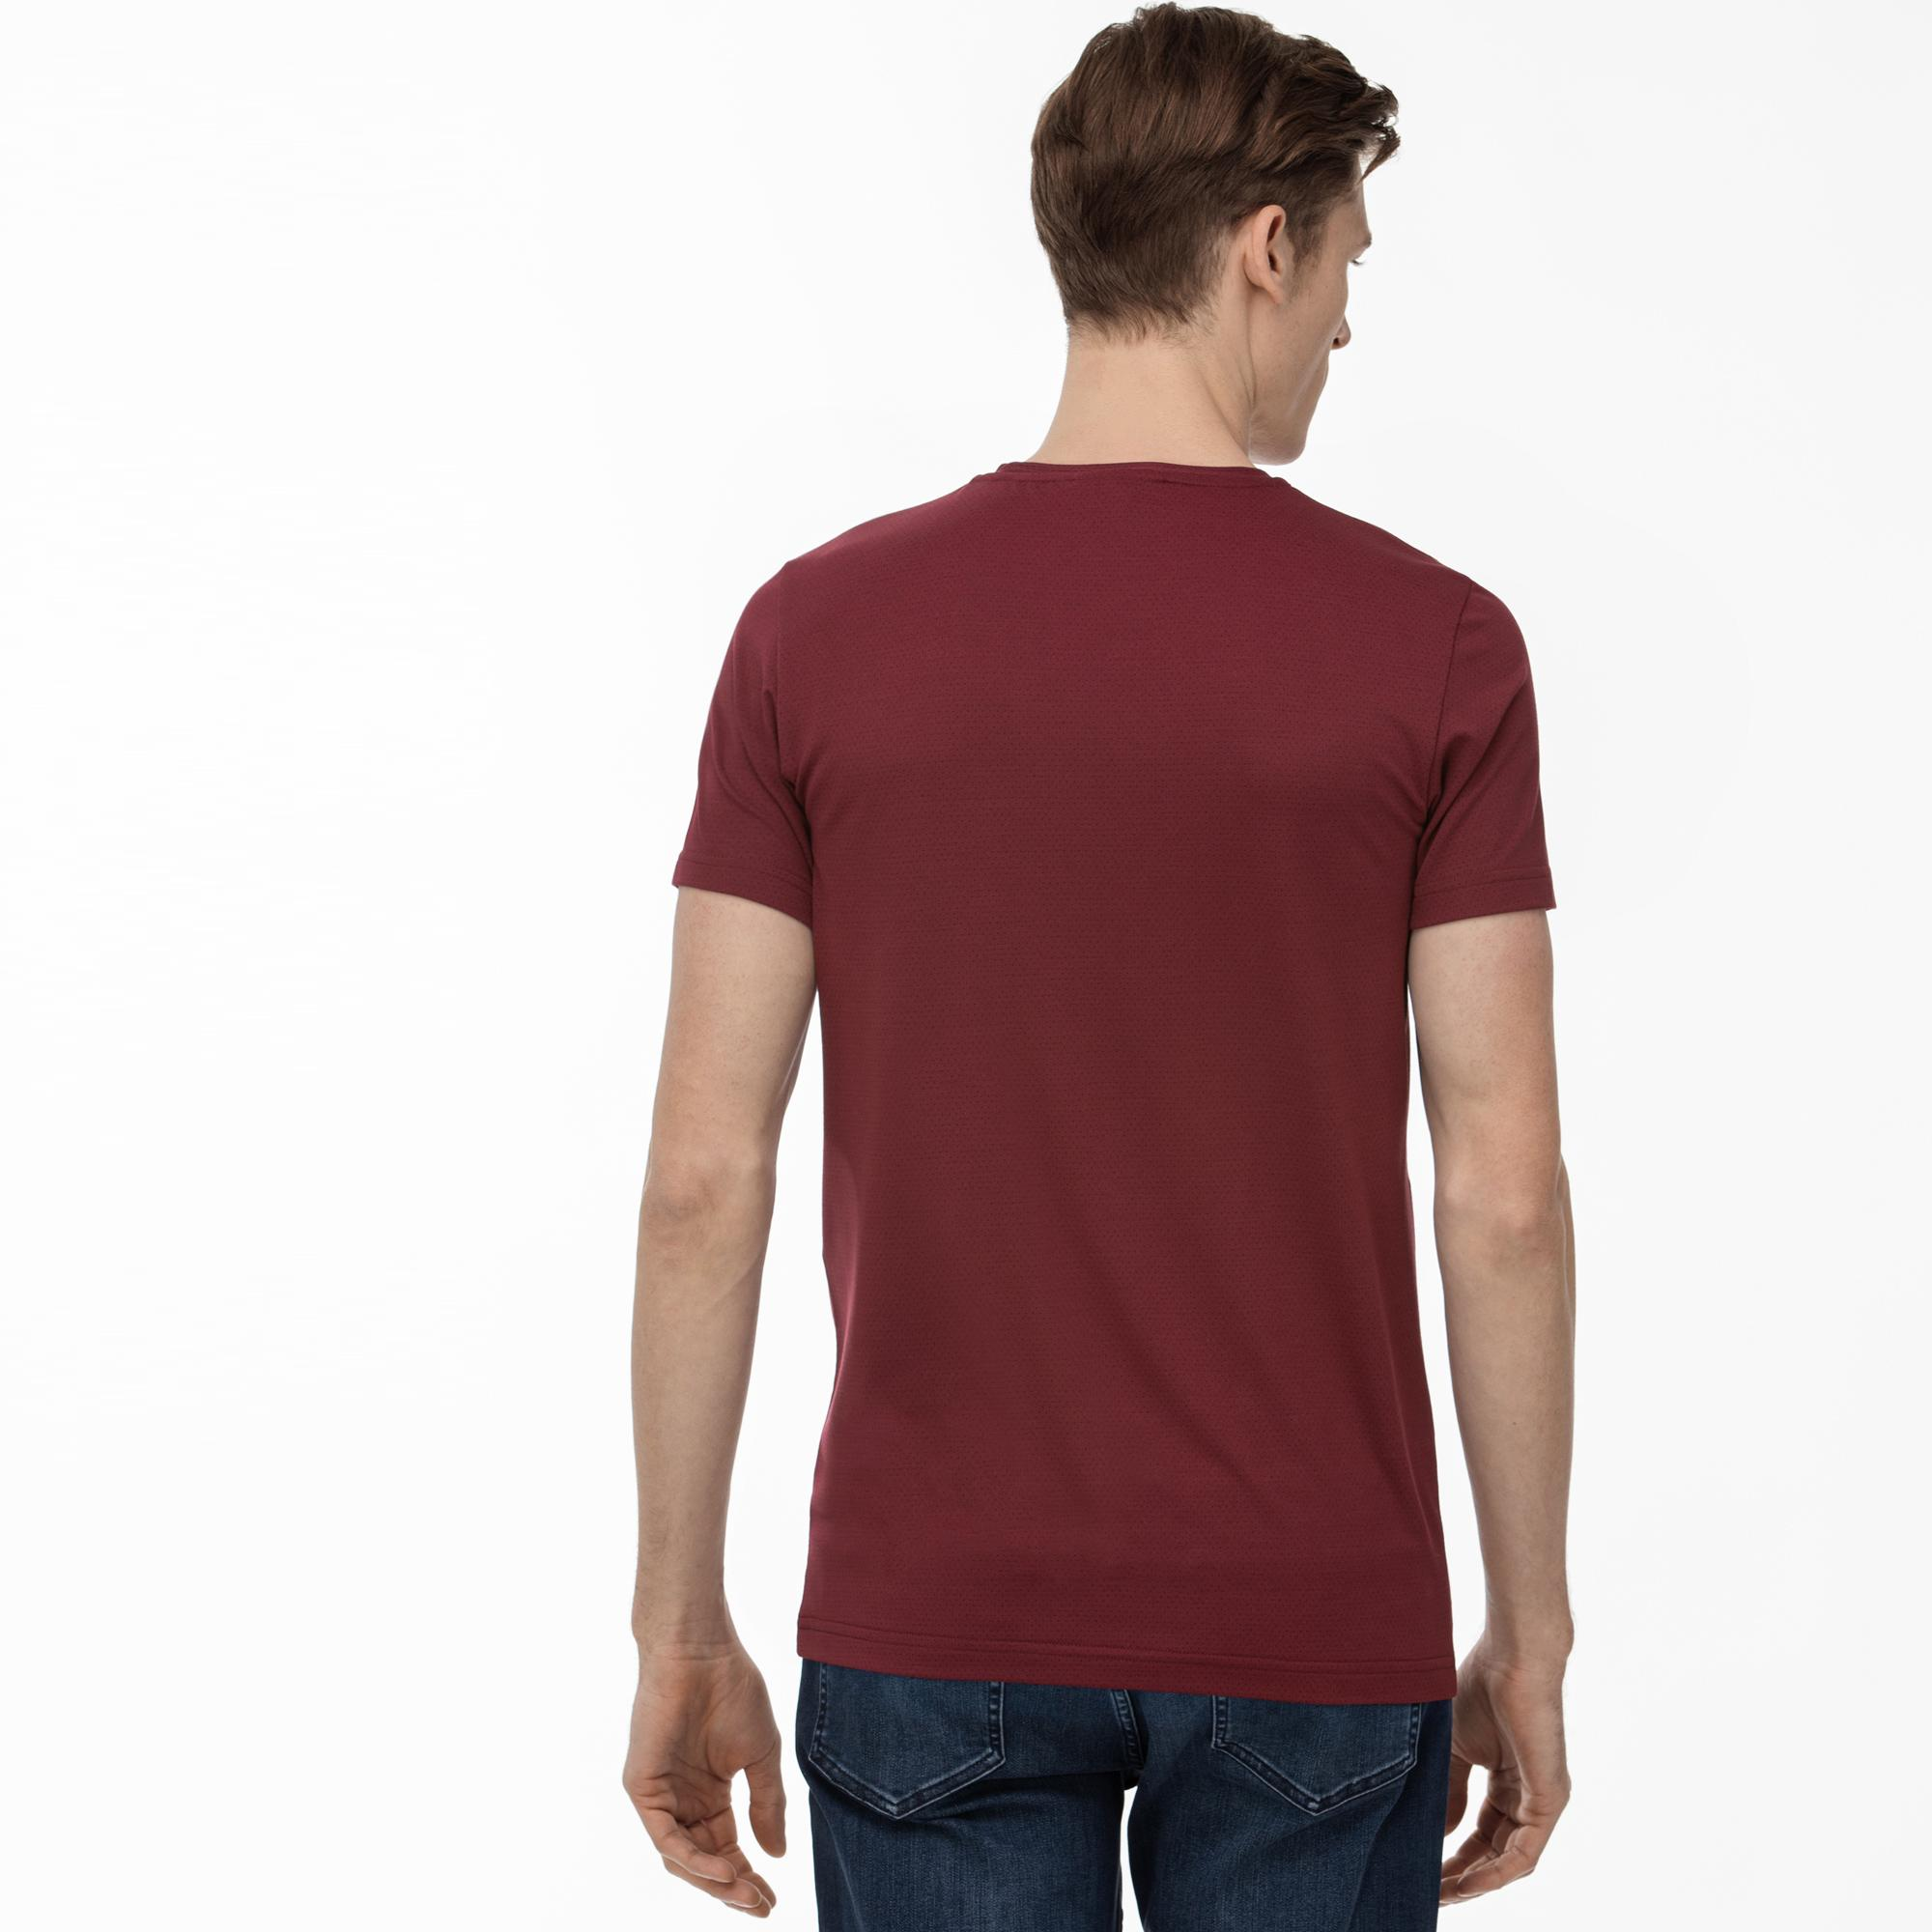 Lacoste Men's Round Neck Patterned T-Shirt